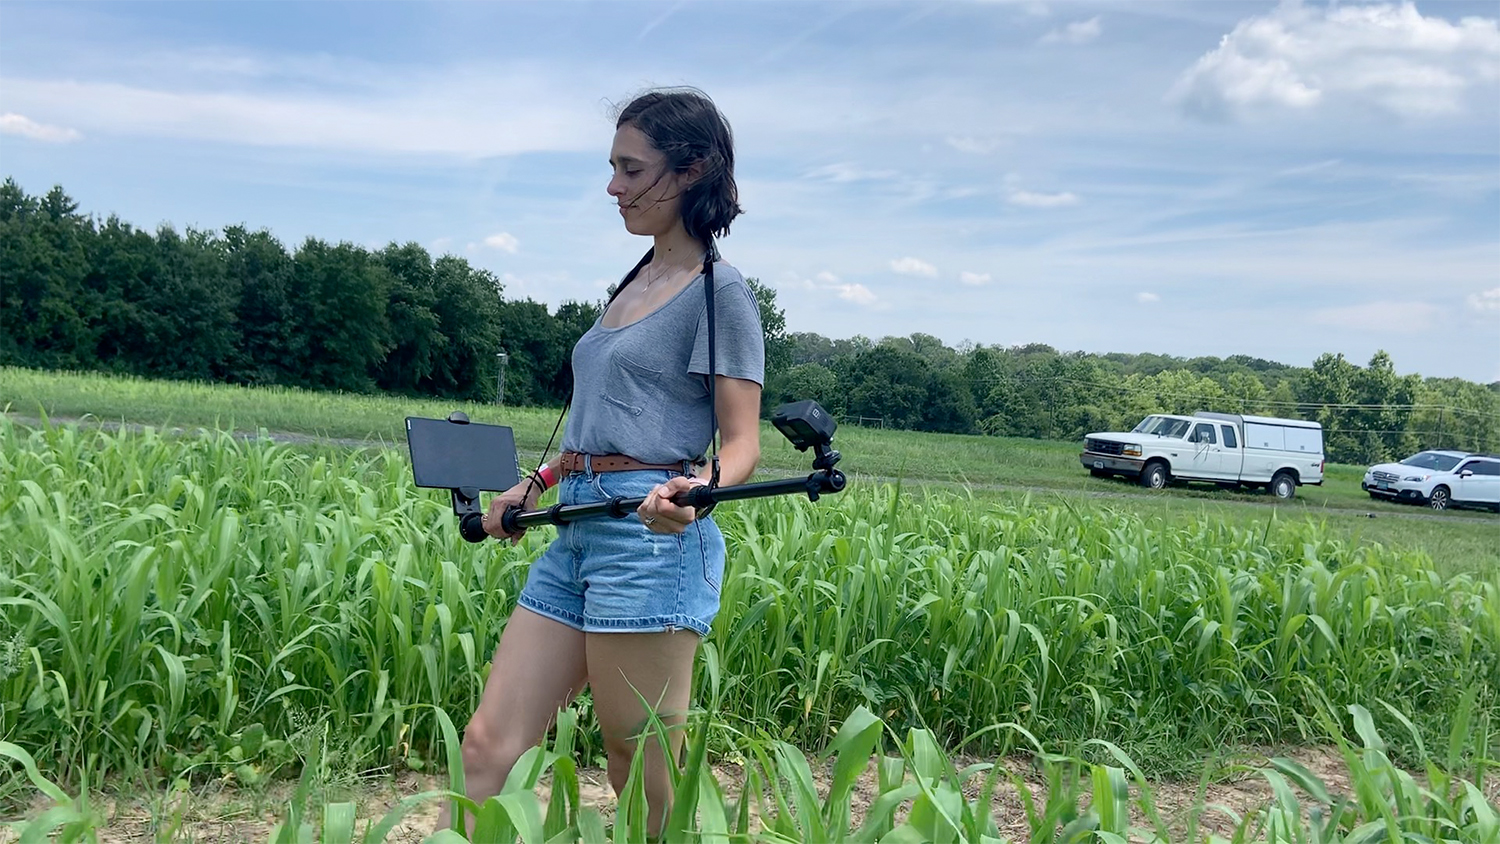 woman carrying a camera in a corn field